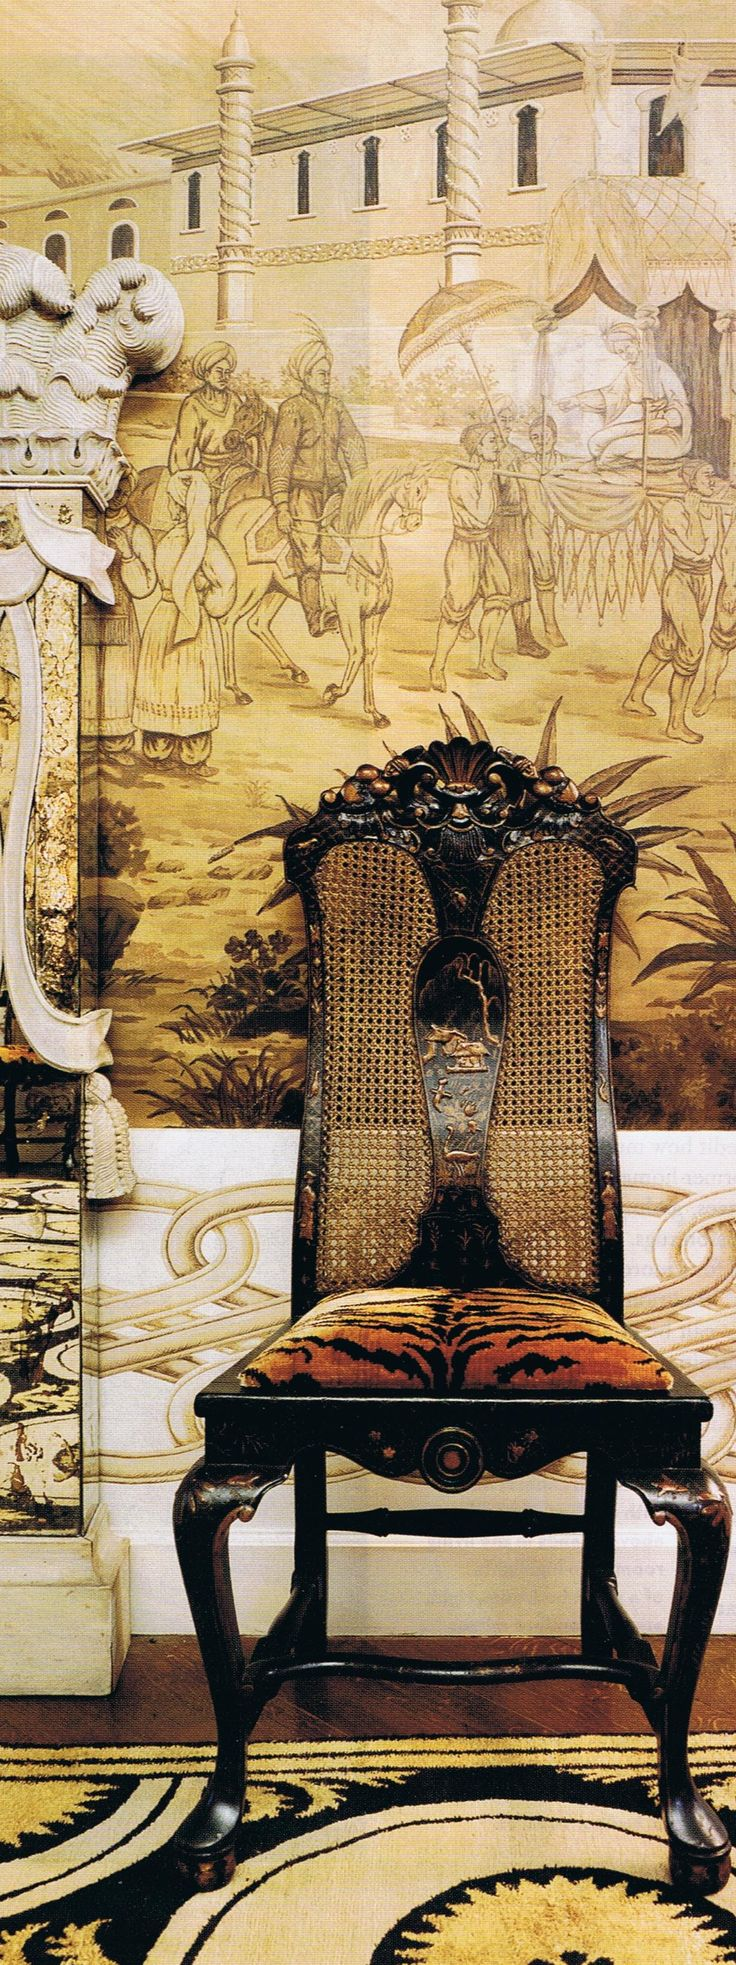 Infusion of sepia tones - Black chair with caning and animal print upholstery